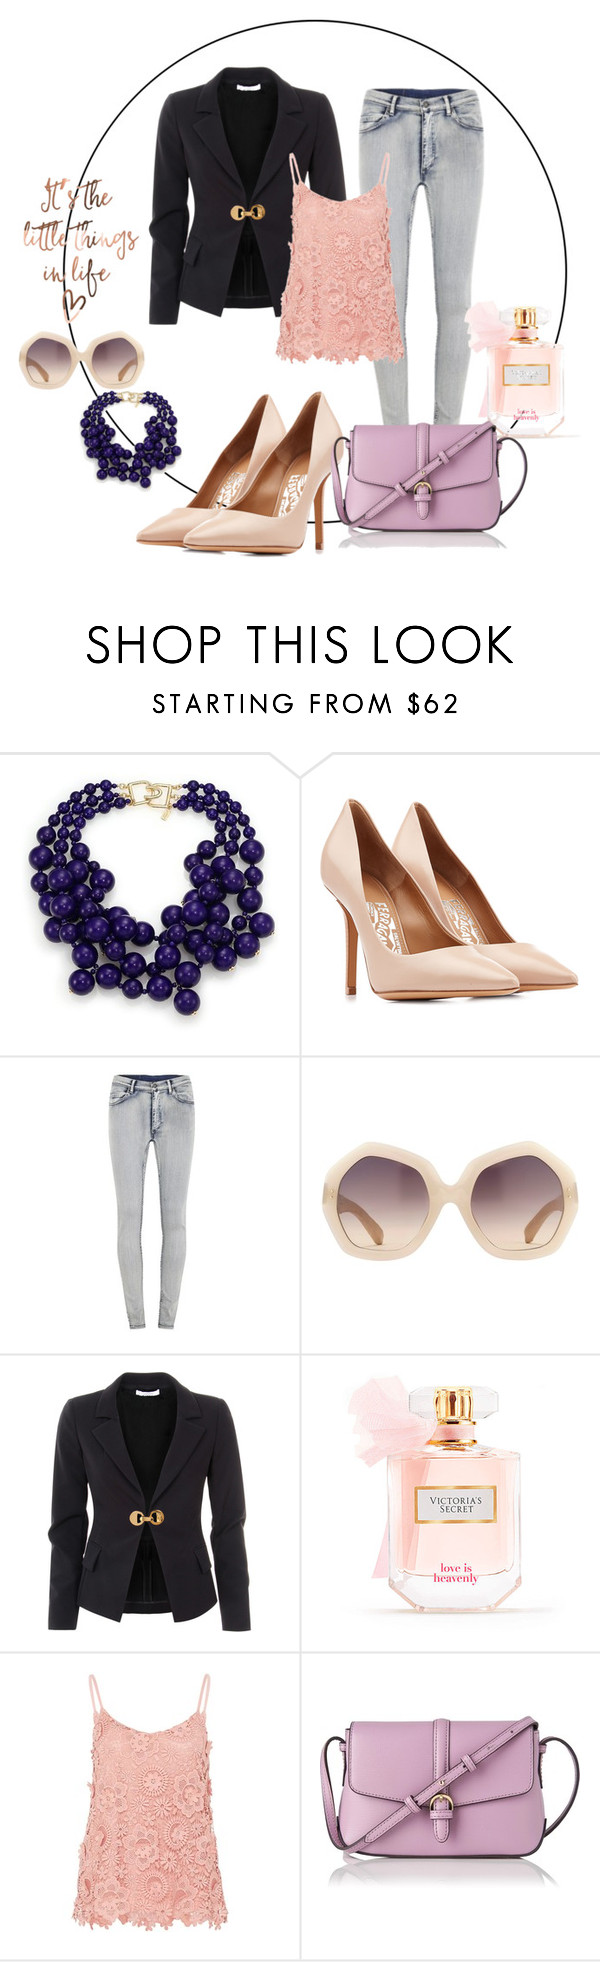 """It's a little things in life"" by black-ladybird ❤ liked on Polyvore featuring Kenneth Jay Lane, Salvatore Ferragamo, Cheap Monday, Linda Farrow, Versace, Victoria's Secret, Hallhuber and L.K.Bennett"